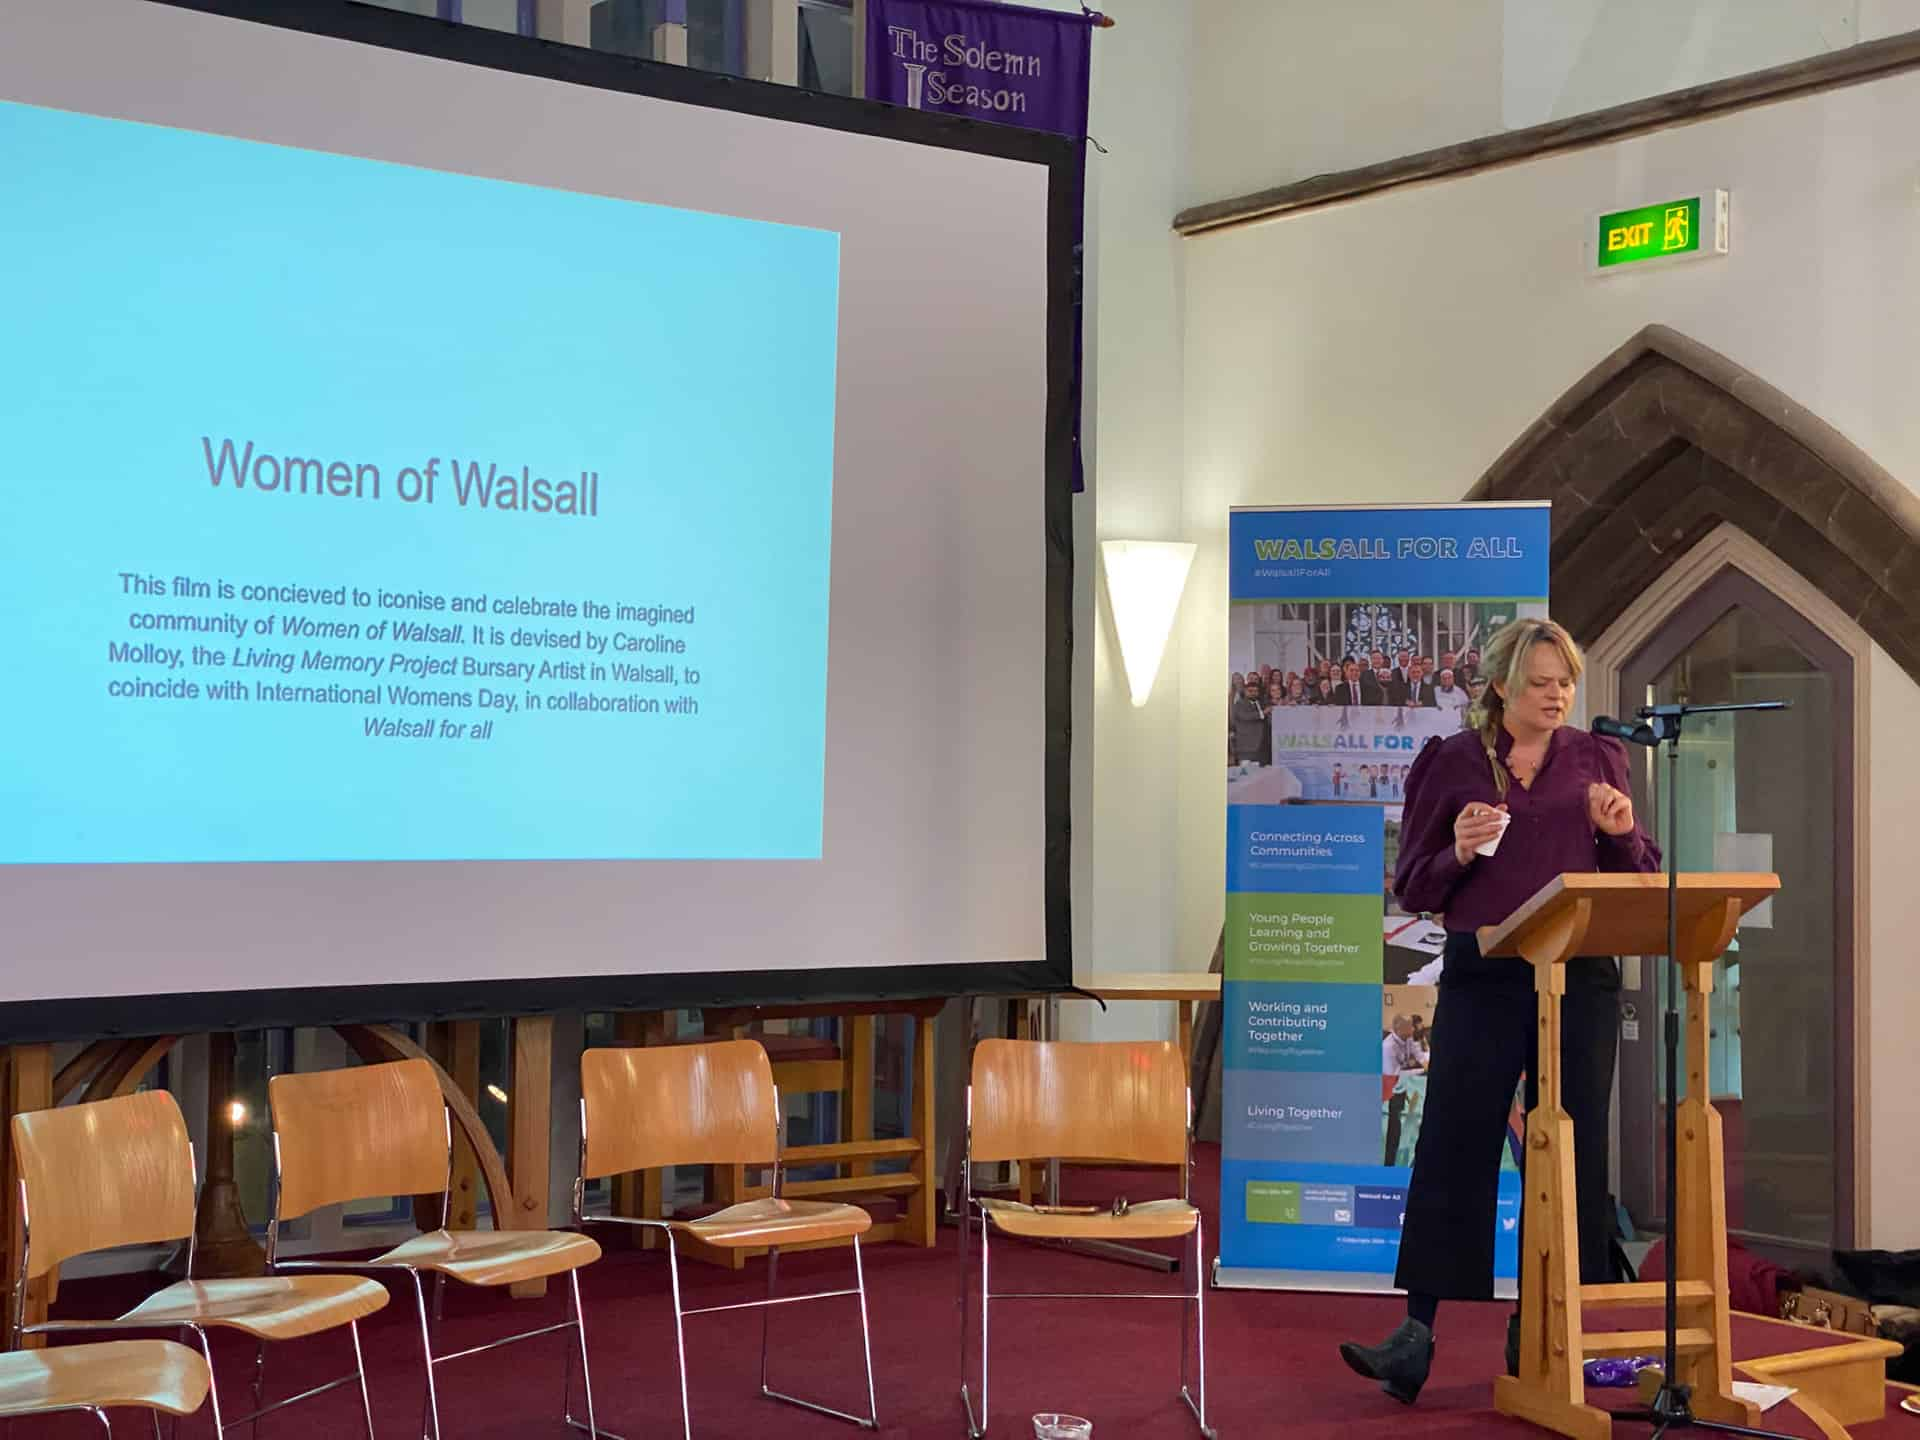 Caroline presenting her project and the film Women of Walsall at the International Women's Day event at the Crossing, Walsall, 13th March 2020